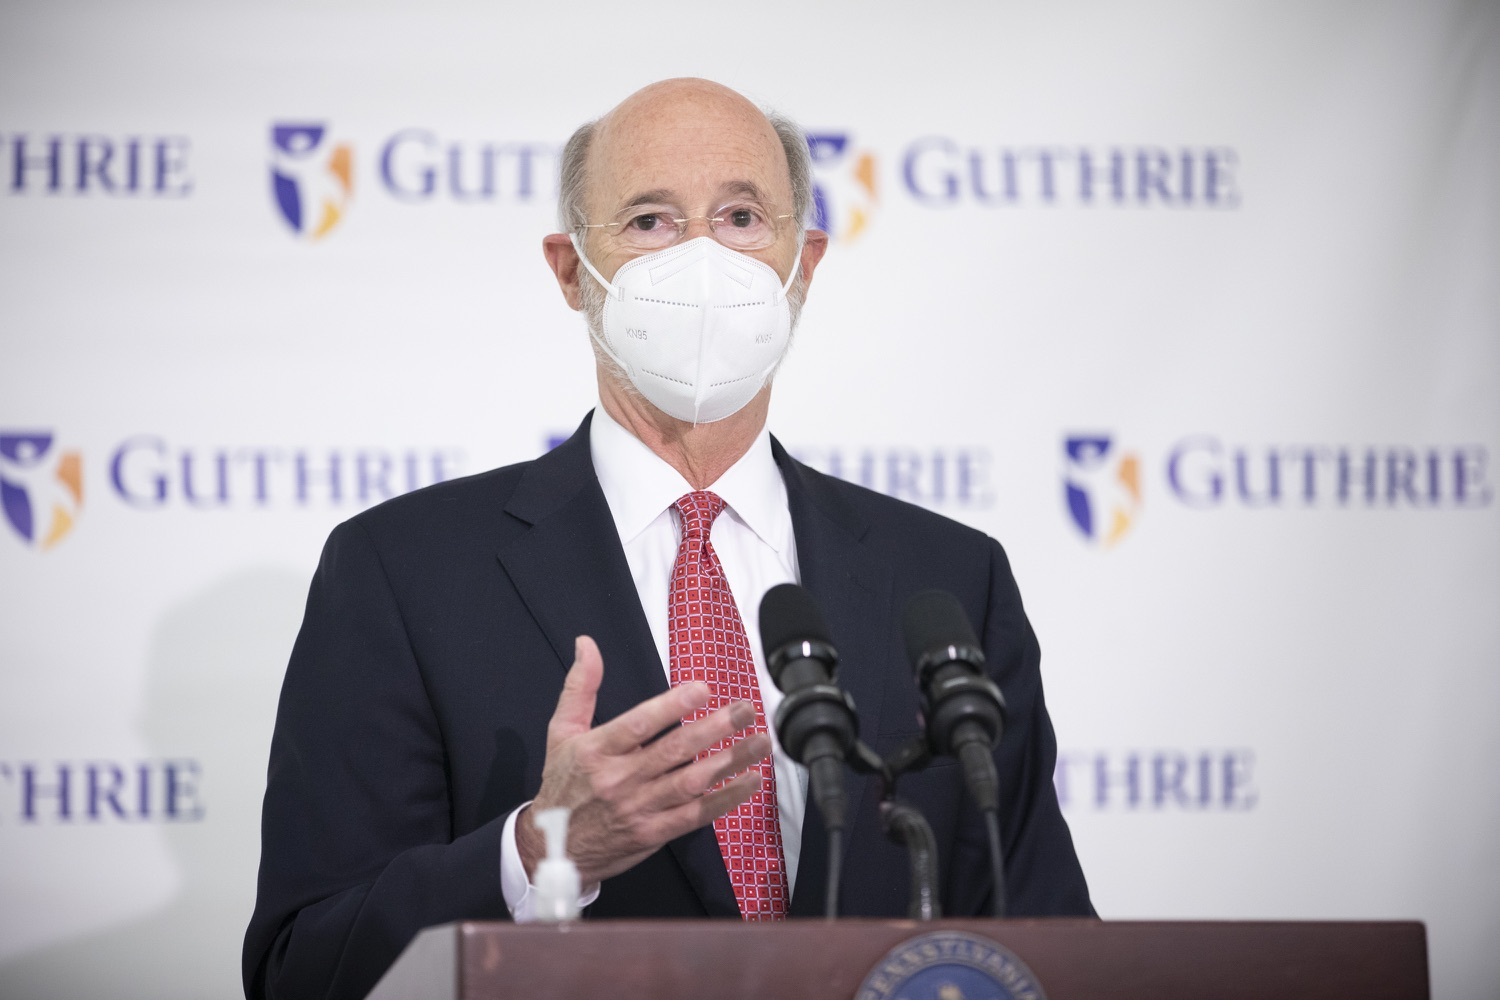 """<a href=""""https://filesource.wostreaming.net/commonwealthofpa/photo/18682_gov_vaccineClinic_dz_036.jpg"""" target=""""_blank"""">⇣Download Photo<br></a>Pennsylvania Governor Tom Wolf speaking with the press.  Governor Tom Wolf today visited the Guthrie Health vaccine clinic in Sayre, Bradford County today to tour this clinic providing vaccines to a large swath of rural residents and to talk about progress in vaccinating Pennsylvanians now that eligibility is open to all individuals age 16 and older.  Sayre, PA   April 21, 2021"""